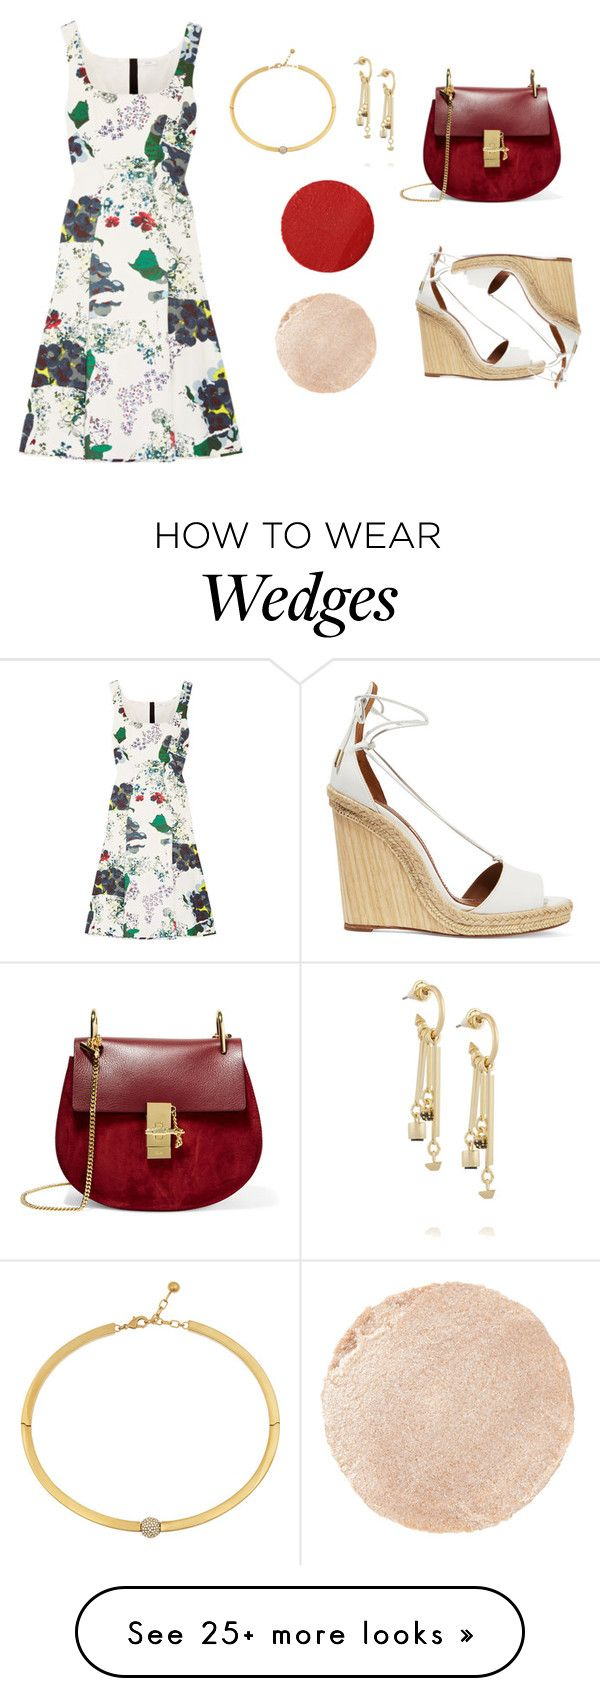 """Pattern Dress"" by anandiek on Polyvore featuring Erdem, Aquazzura, Chloé, Eddie Borgo, Wander Beauty, Tom Ford, Summer, dress, print and pattern"